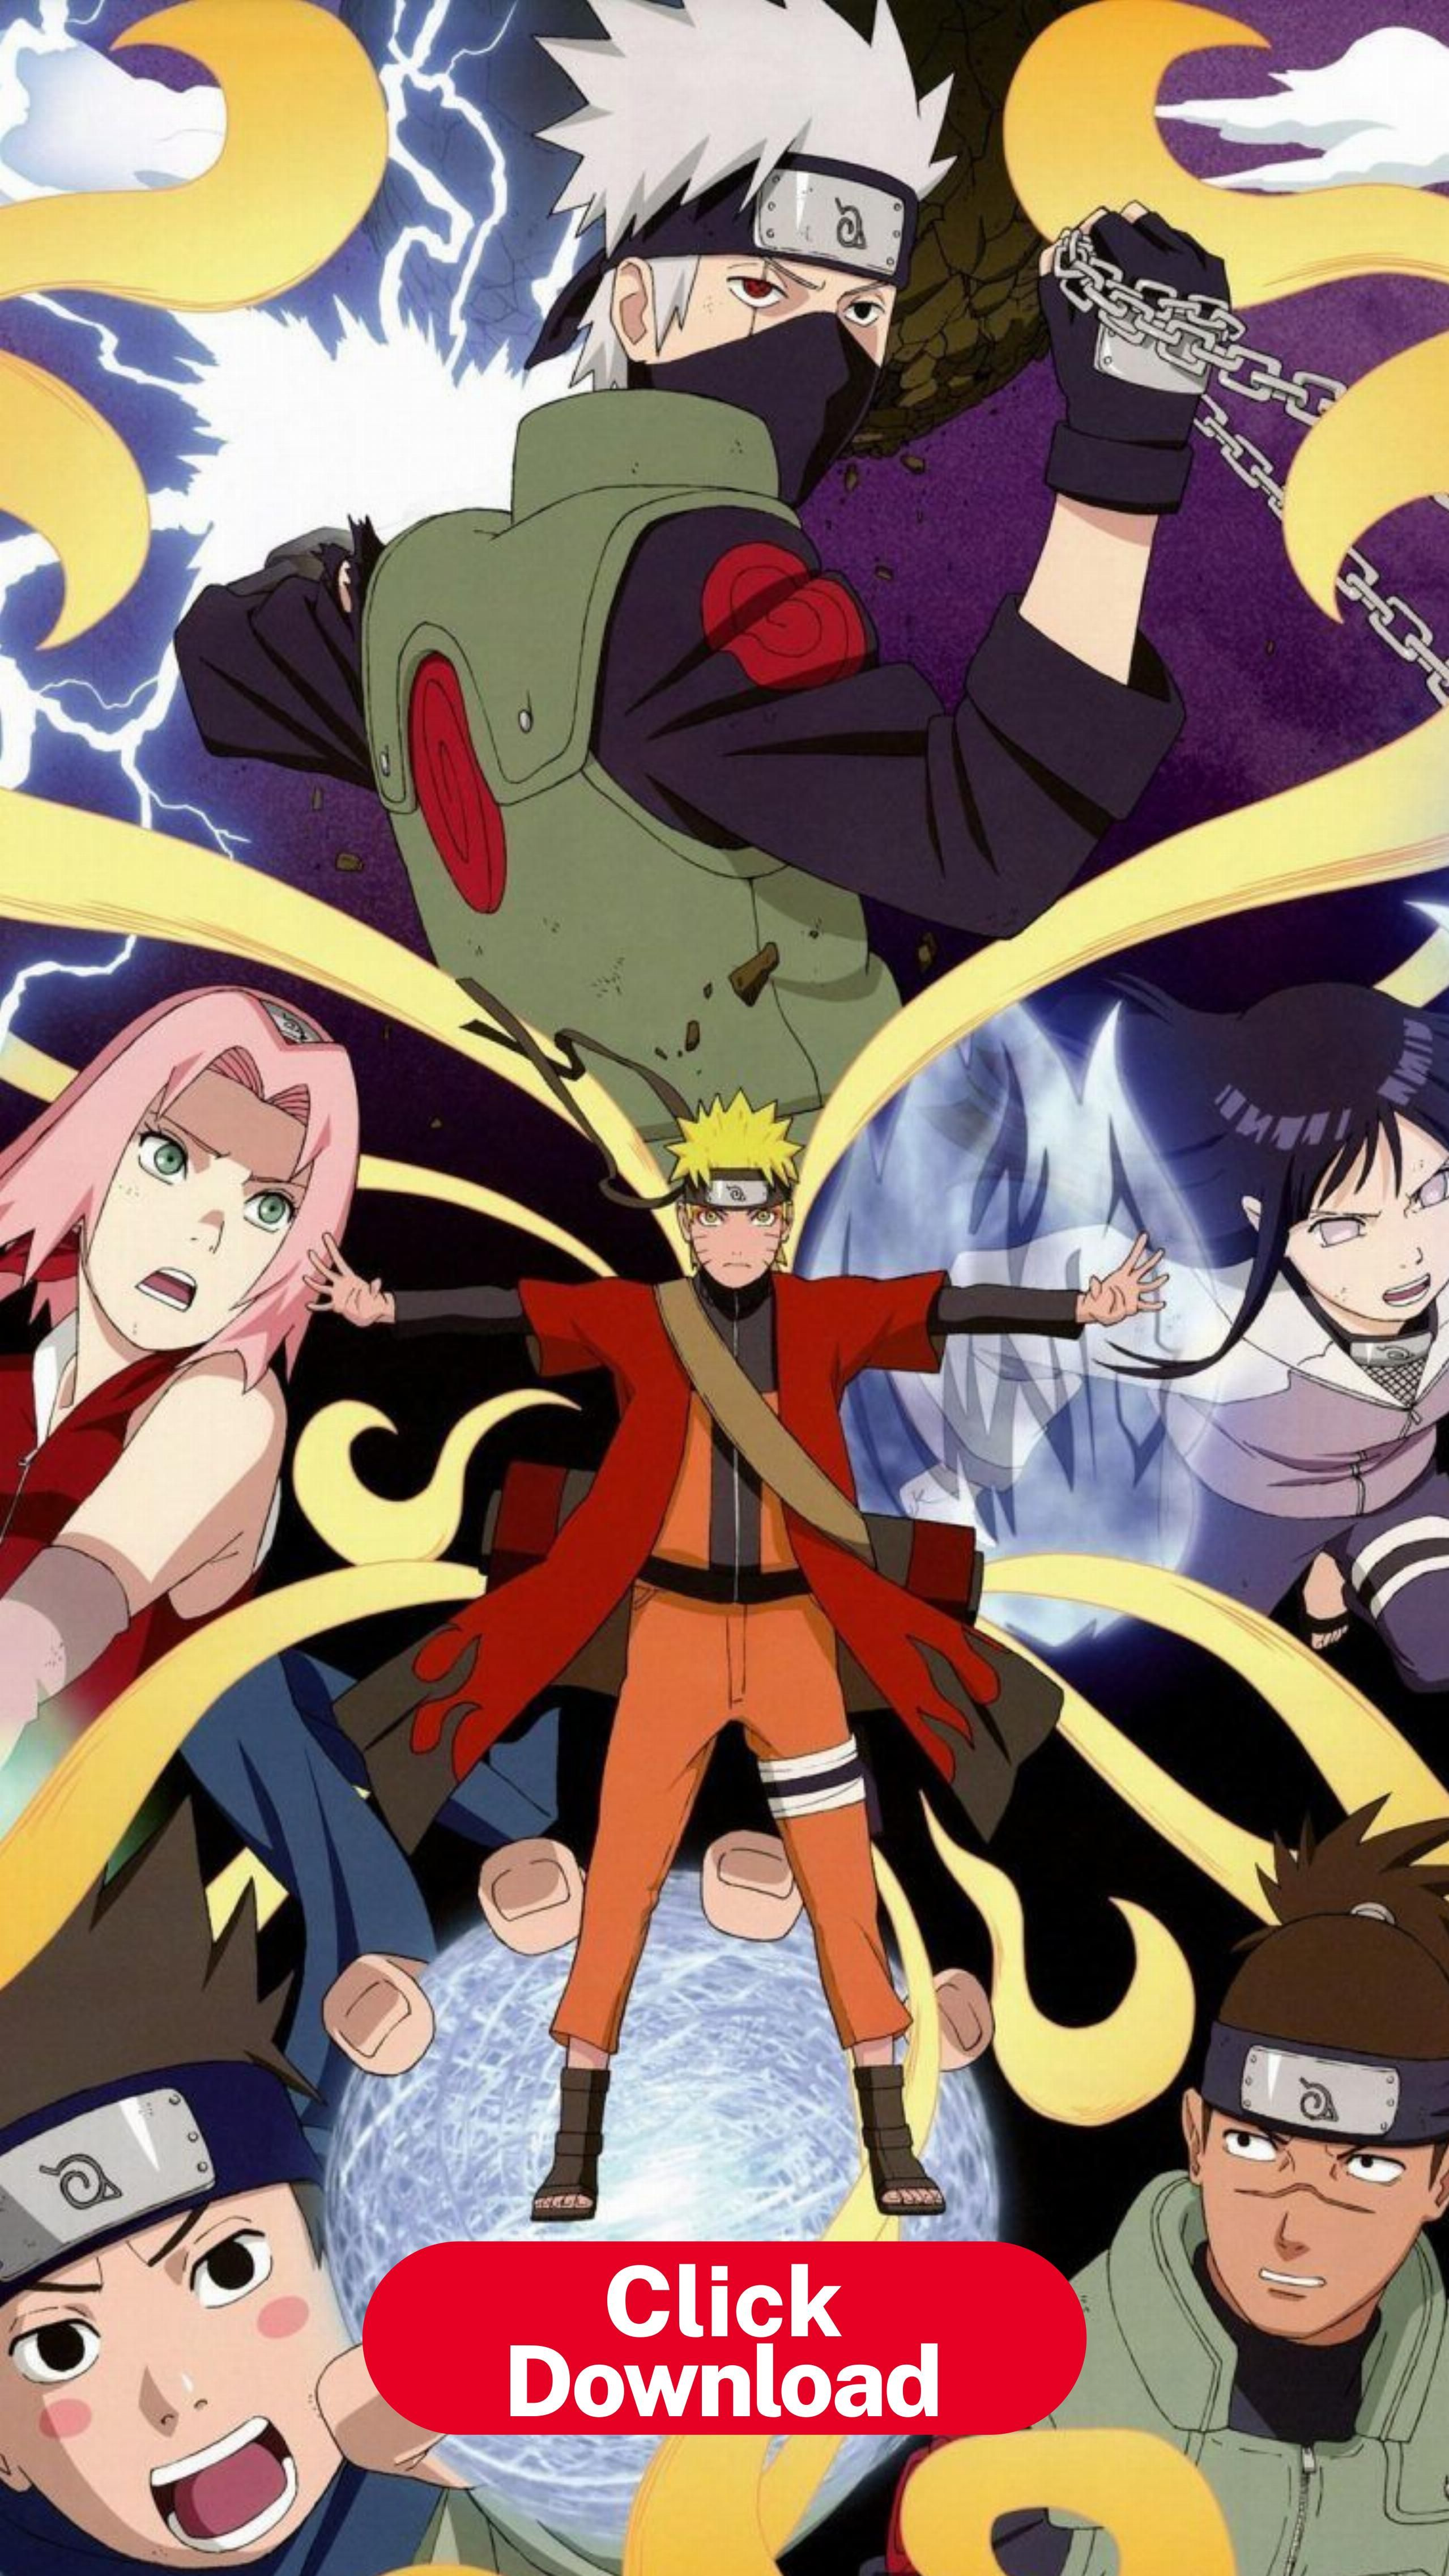 Naruto Shippuden Iphone Wallpapers Top Free Naruto Shippuden Best Naruto Wallpapers Wallpaper Naruto Shippuden Anime Naruto